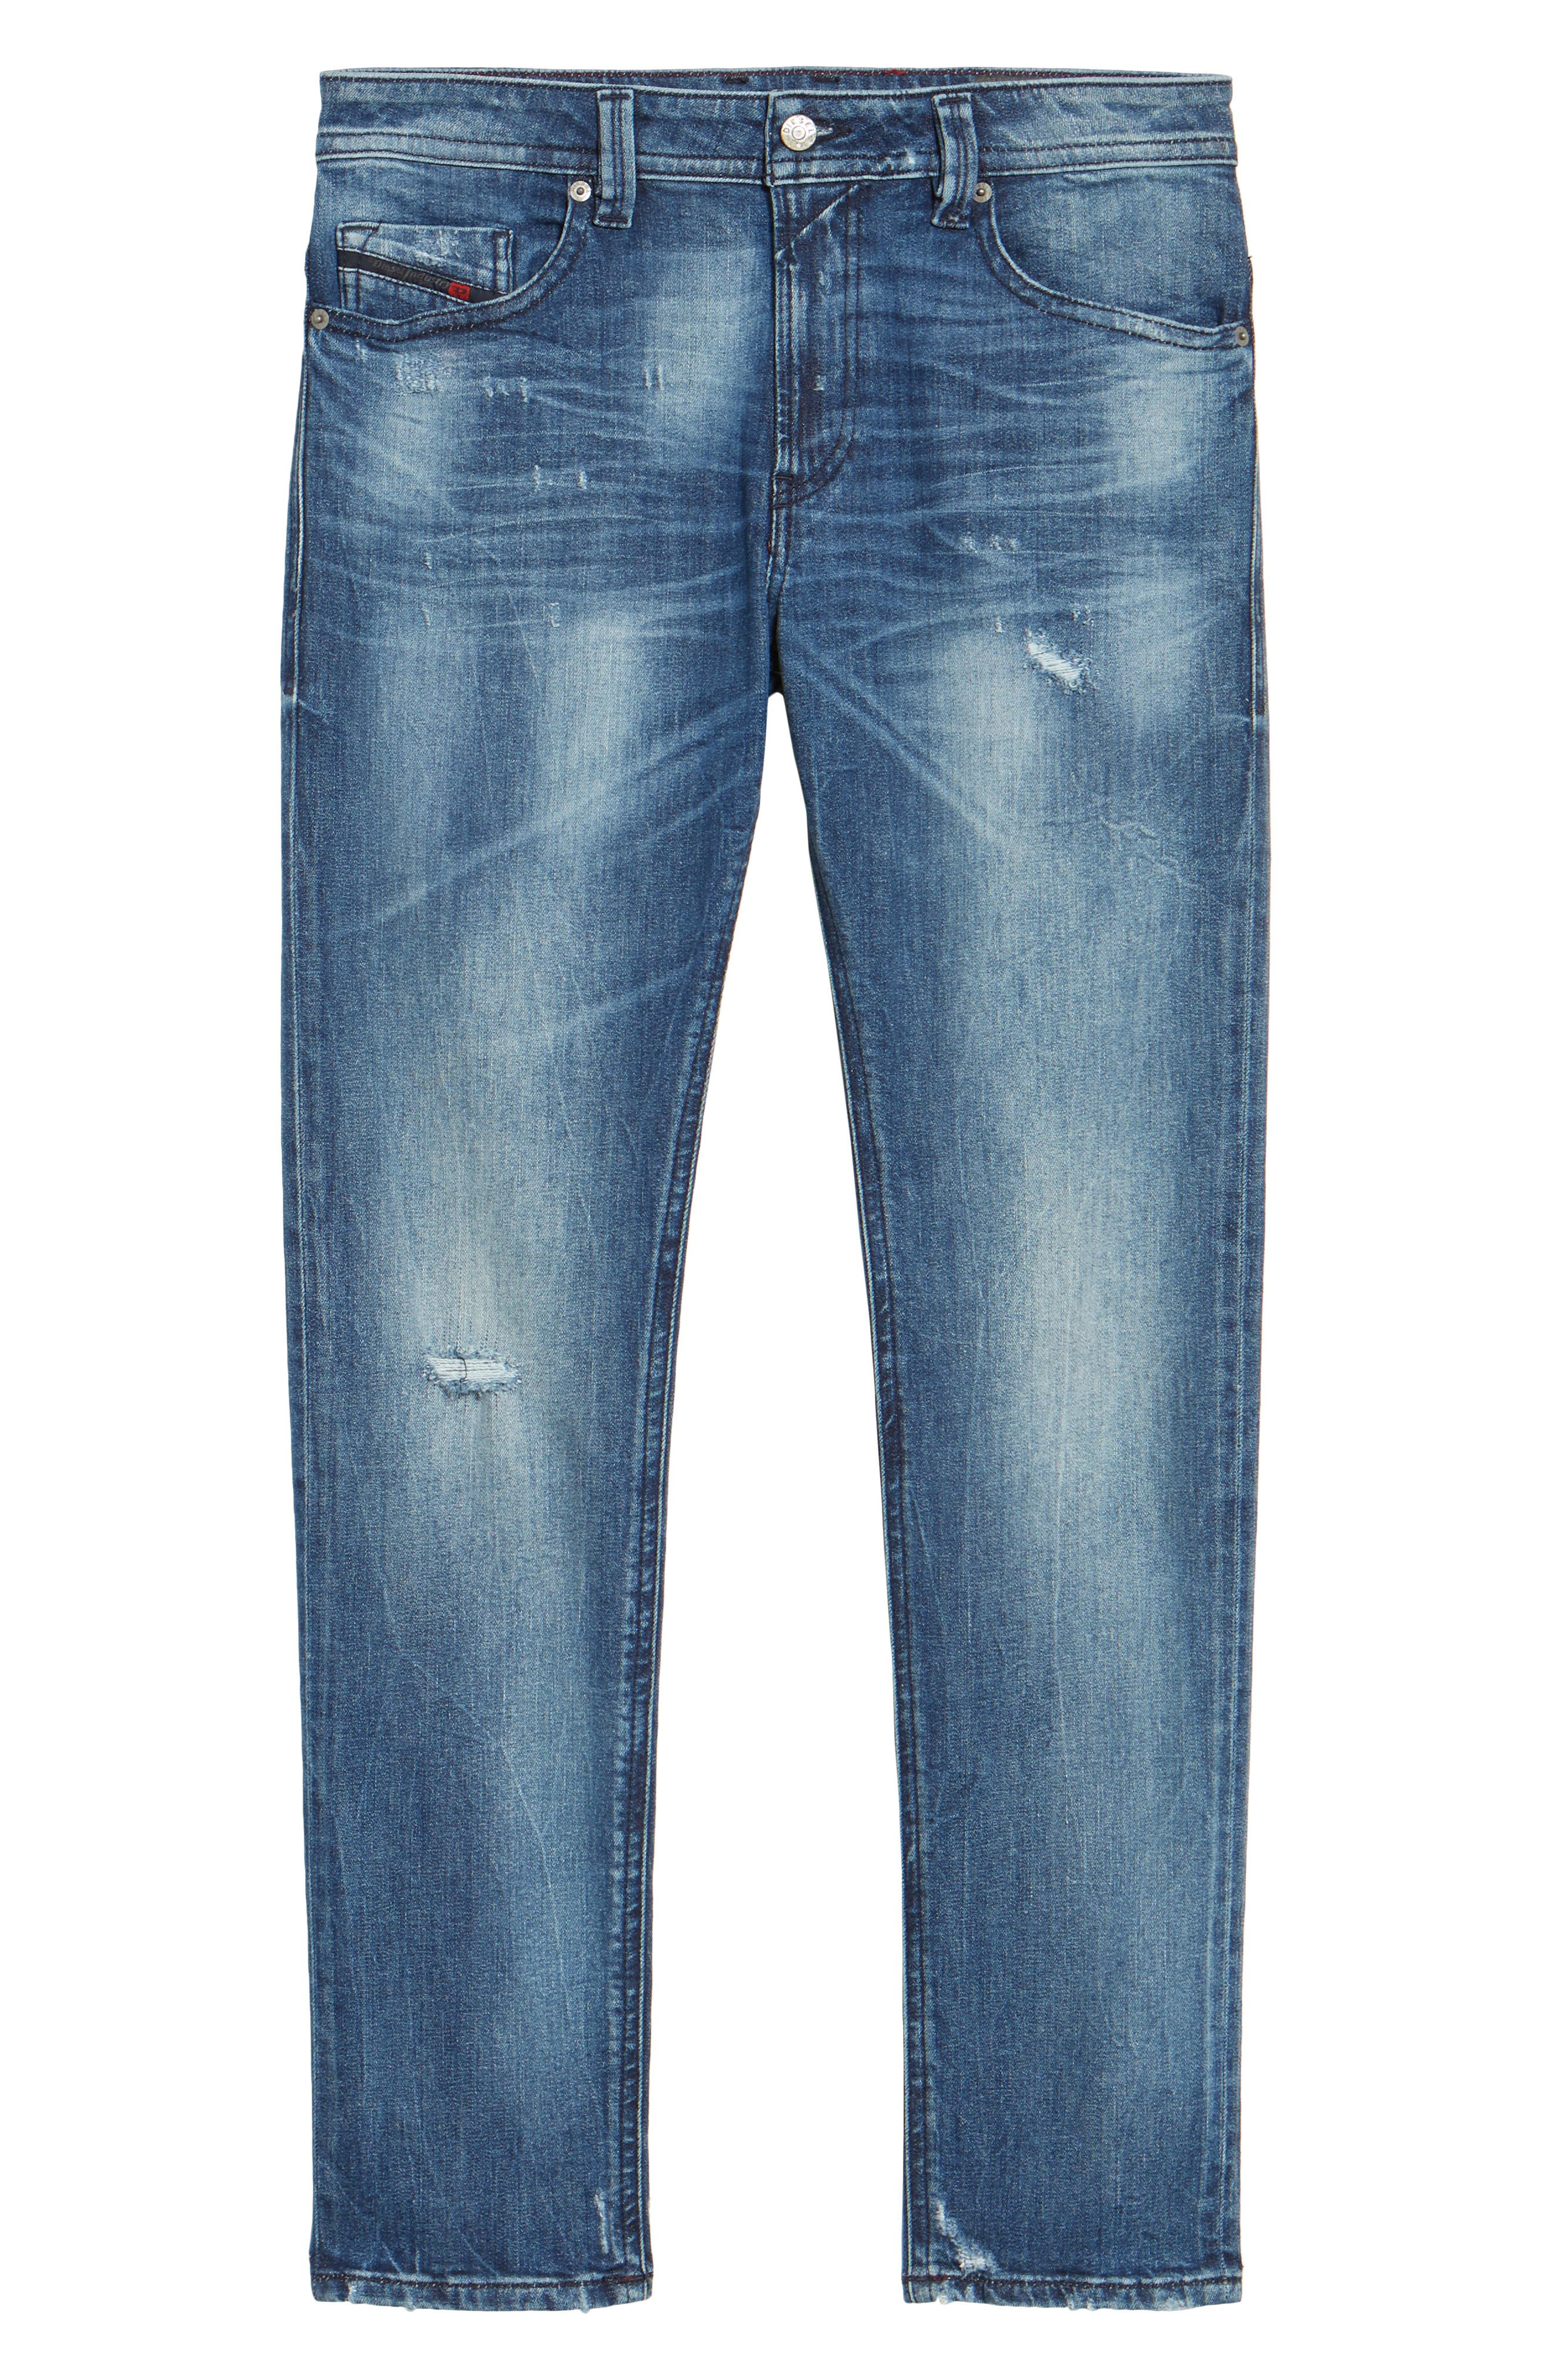 Thommer Slim Fit Jeans,                             Alternate thumbnail 6, color,